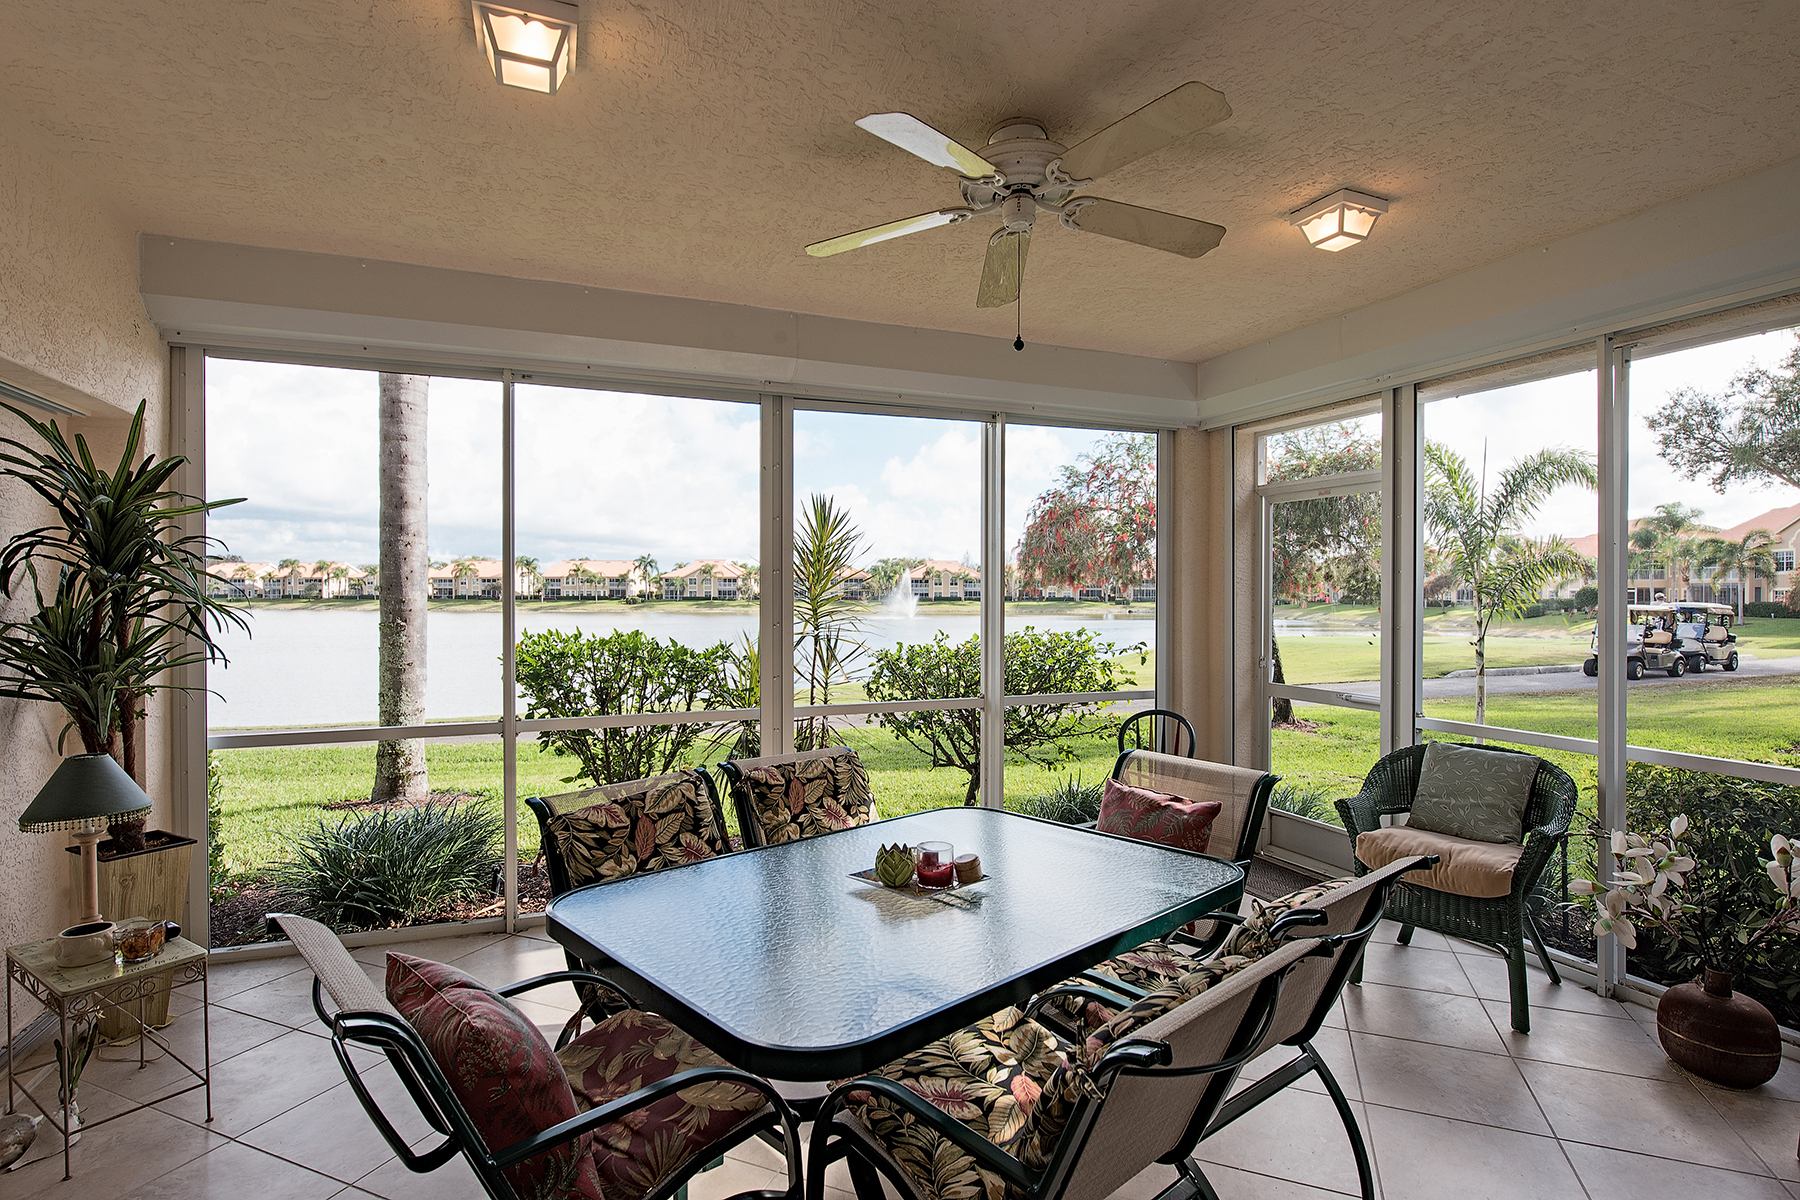 Additional photo for property listing at WORTHINGTON 28008  Cavendish Ct 4902,  Bonita Springs, Florida 34135 United States